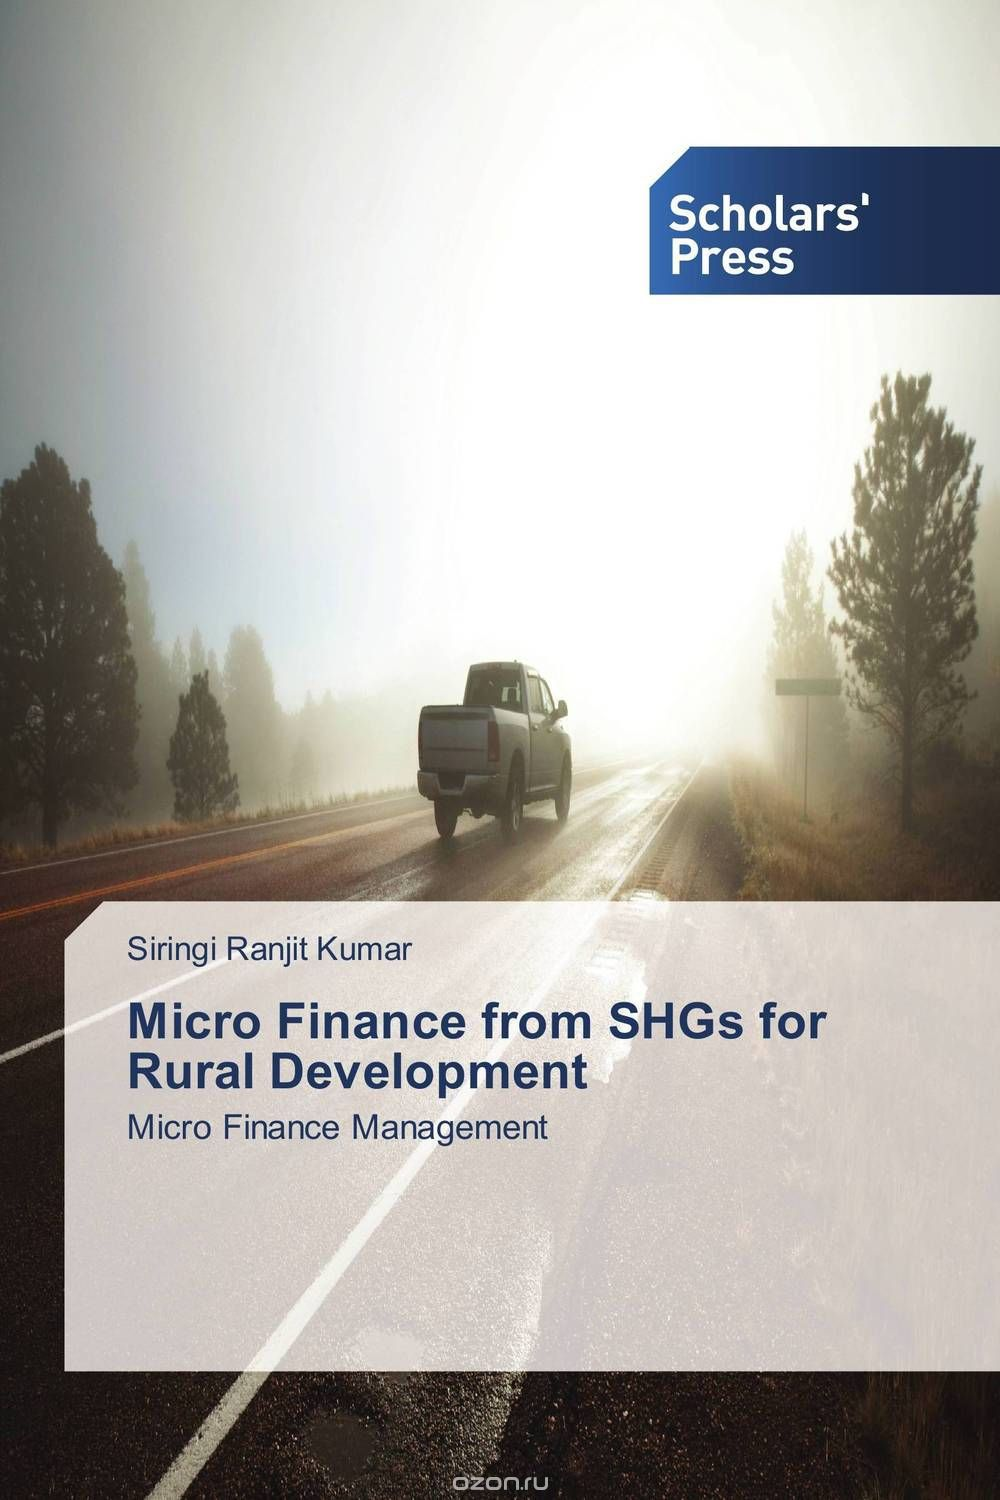 Micro Finance from SHGs for Rural Development